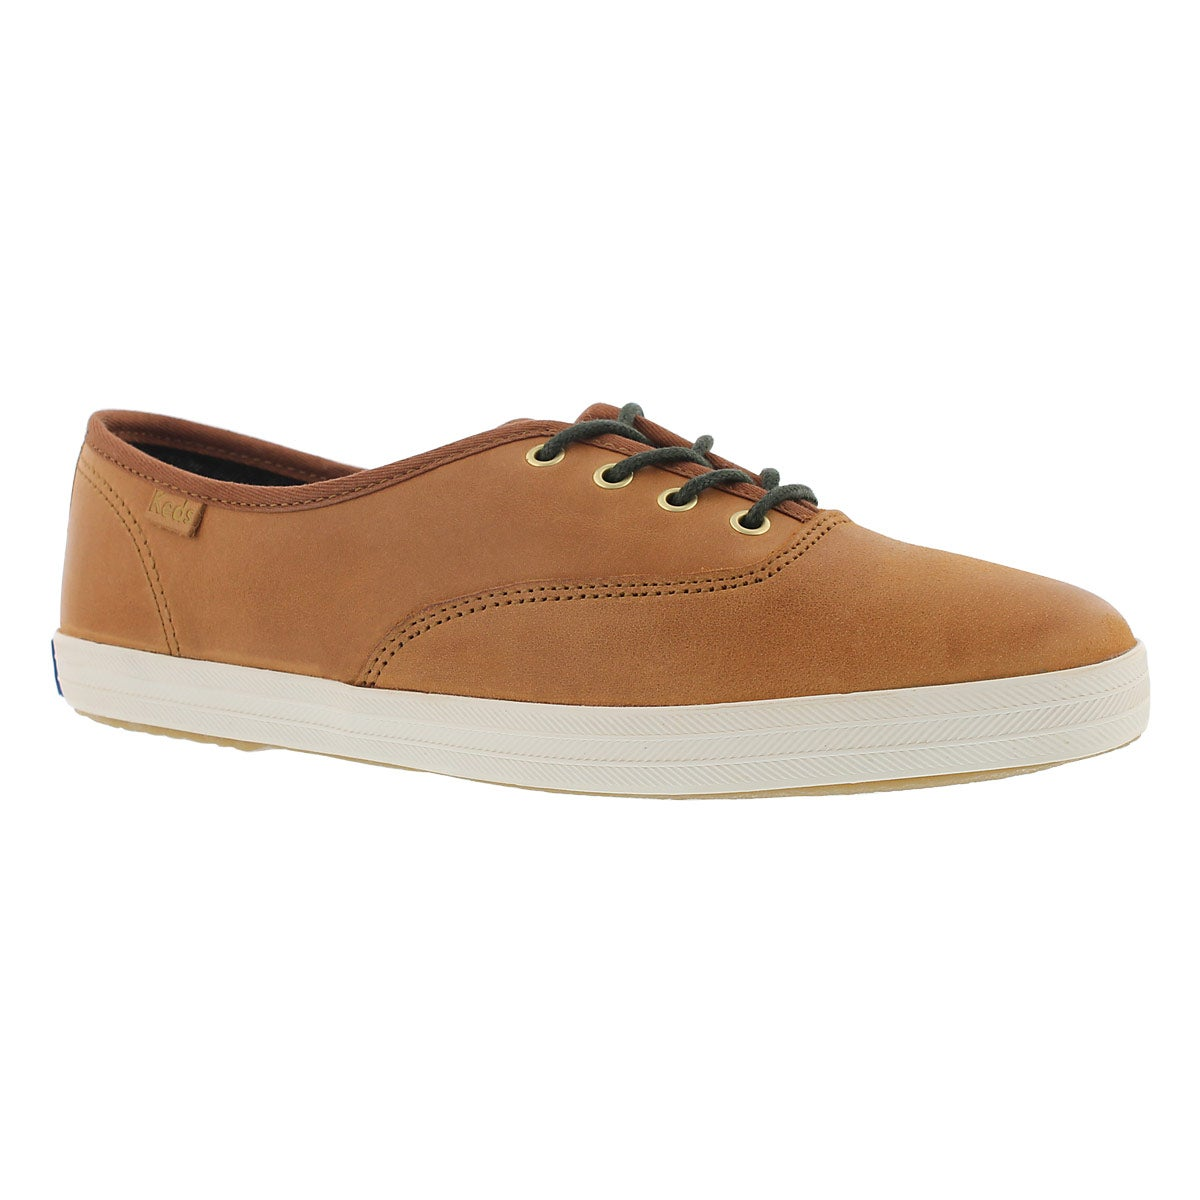 Lds Champion Burnished lthr cgnc sneaker